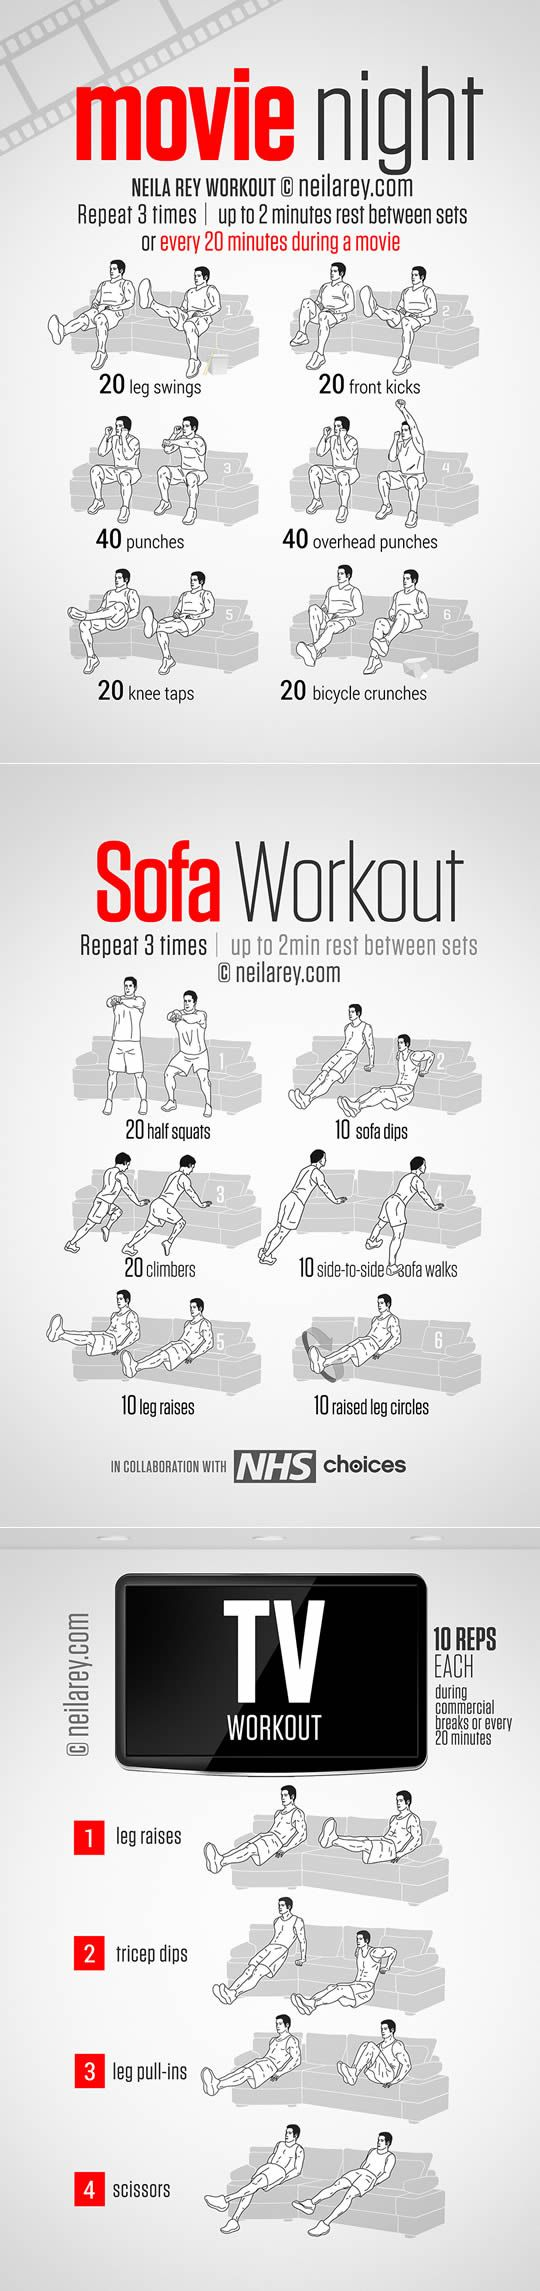 Funny creative workout at home, doing workout while you watching movies or TV, even sitting in a sofa.